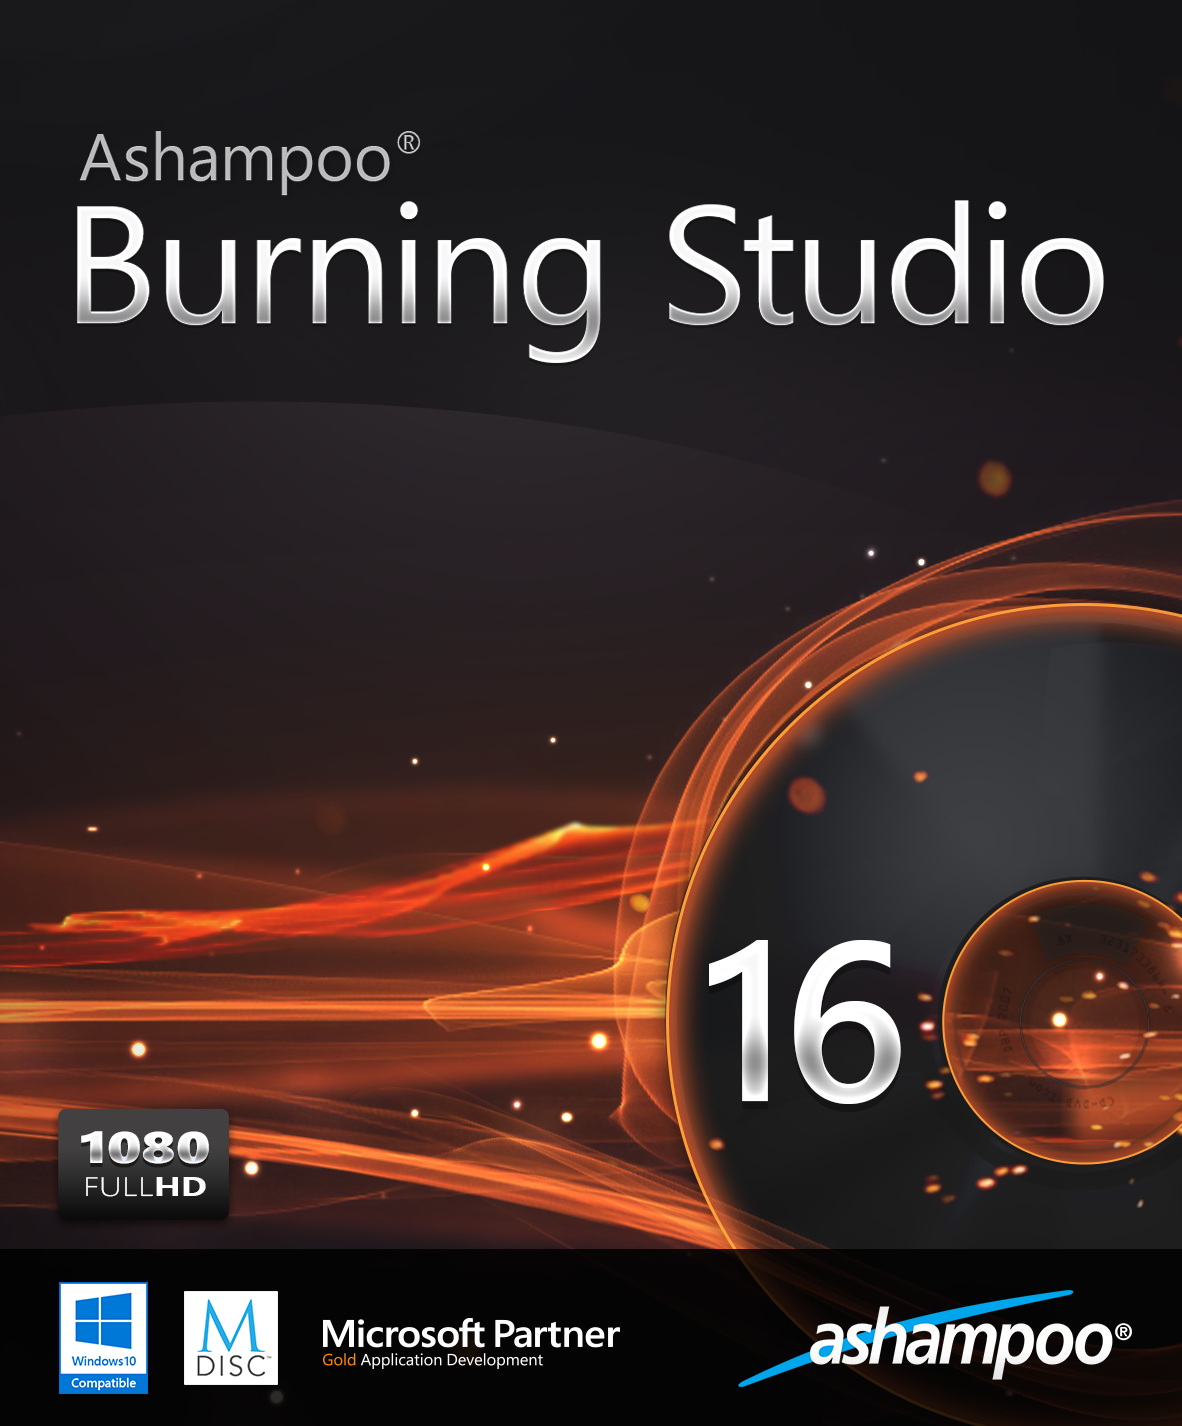 Roxio-dvd-brenner-software (Ashampoo Burning Studio 16 [Download])